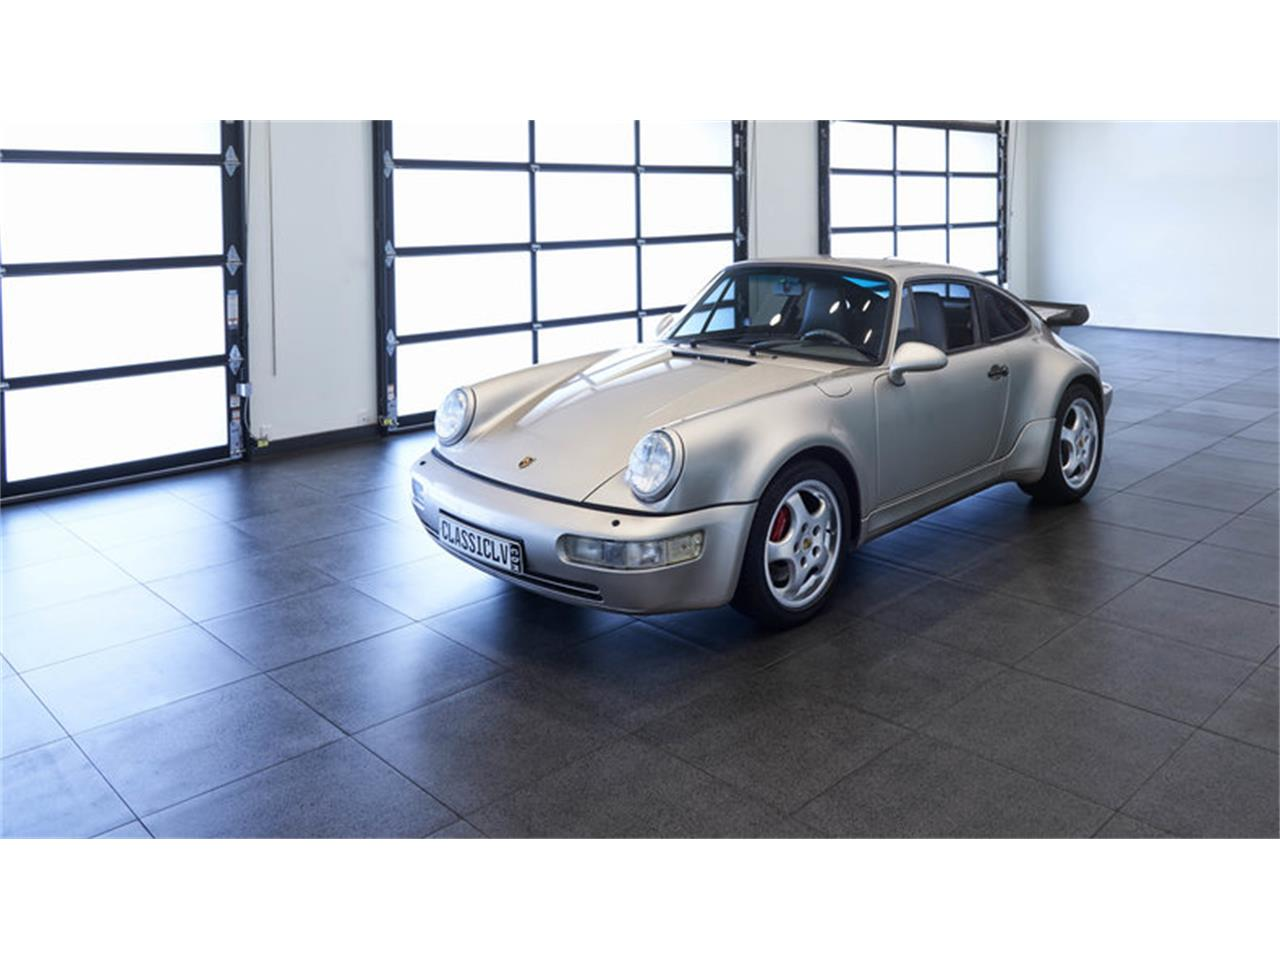 Large Picture of '91 911 Turbo located in Nevada - $149,911.00 Offered by Gaudin Porsche of Las Vegas - LIVG